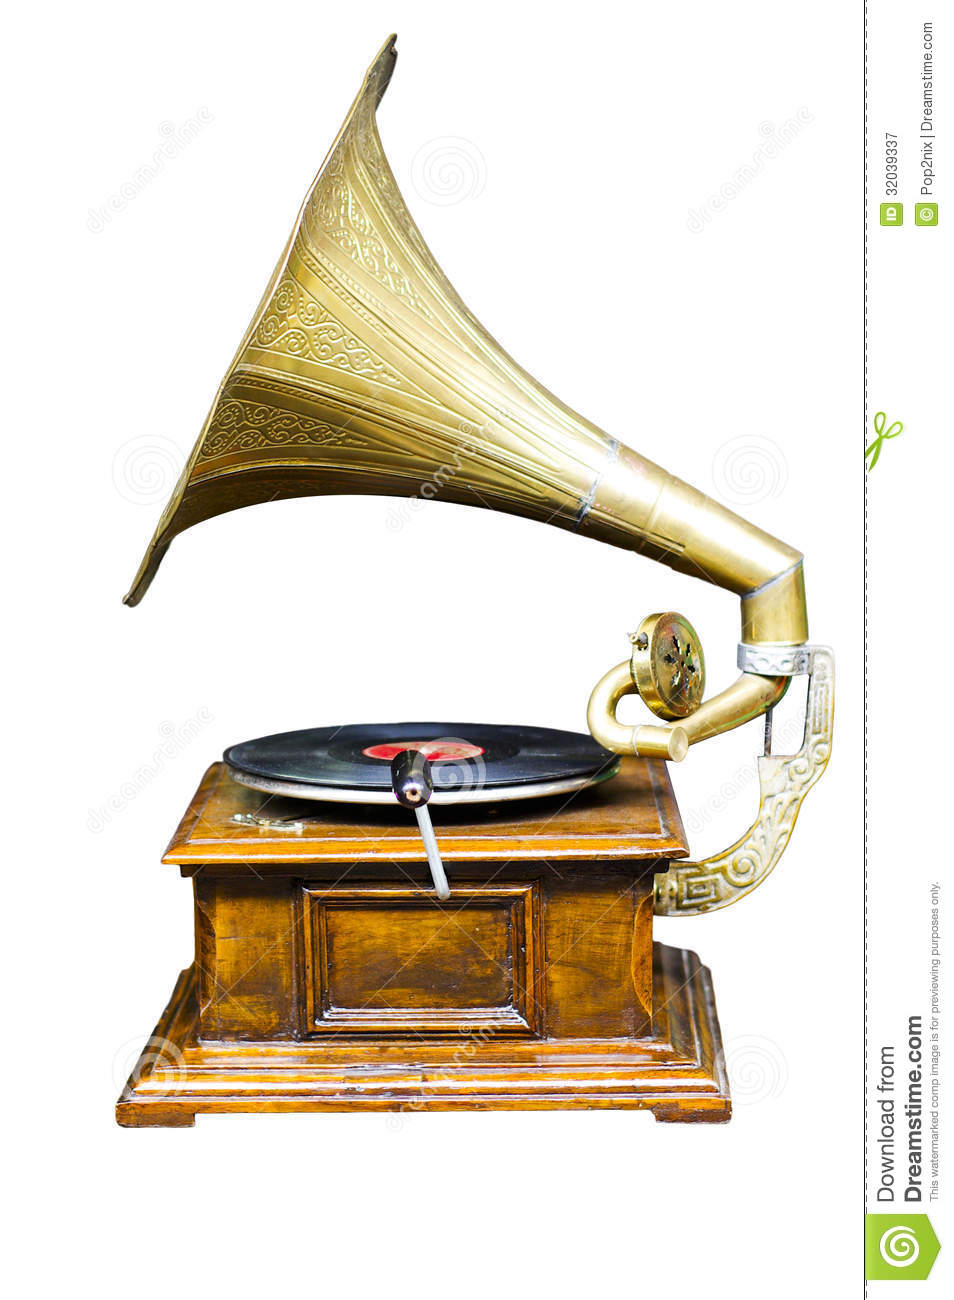 Vintage Wind-up Gramophone Record Player Royalty Free ...